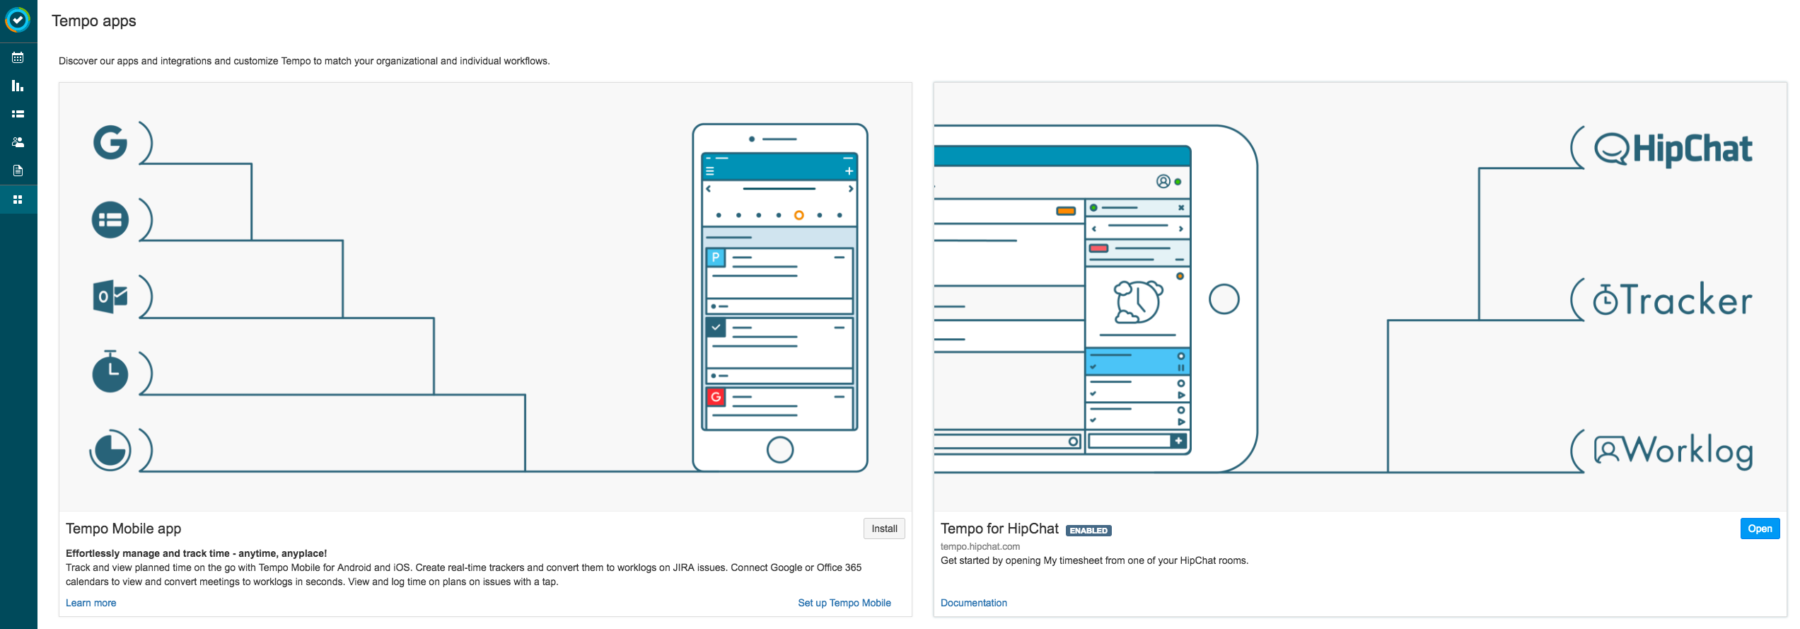 Tempo Apps Page